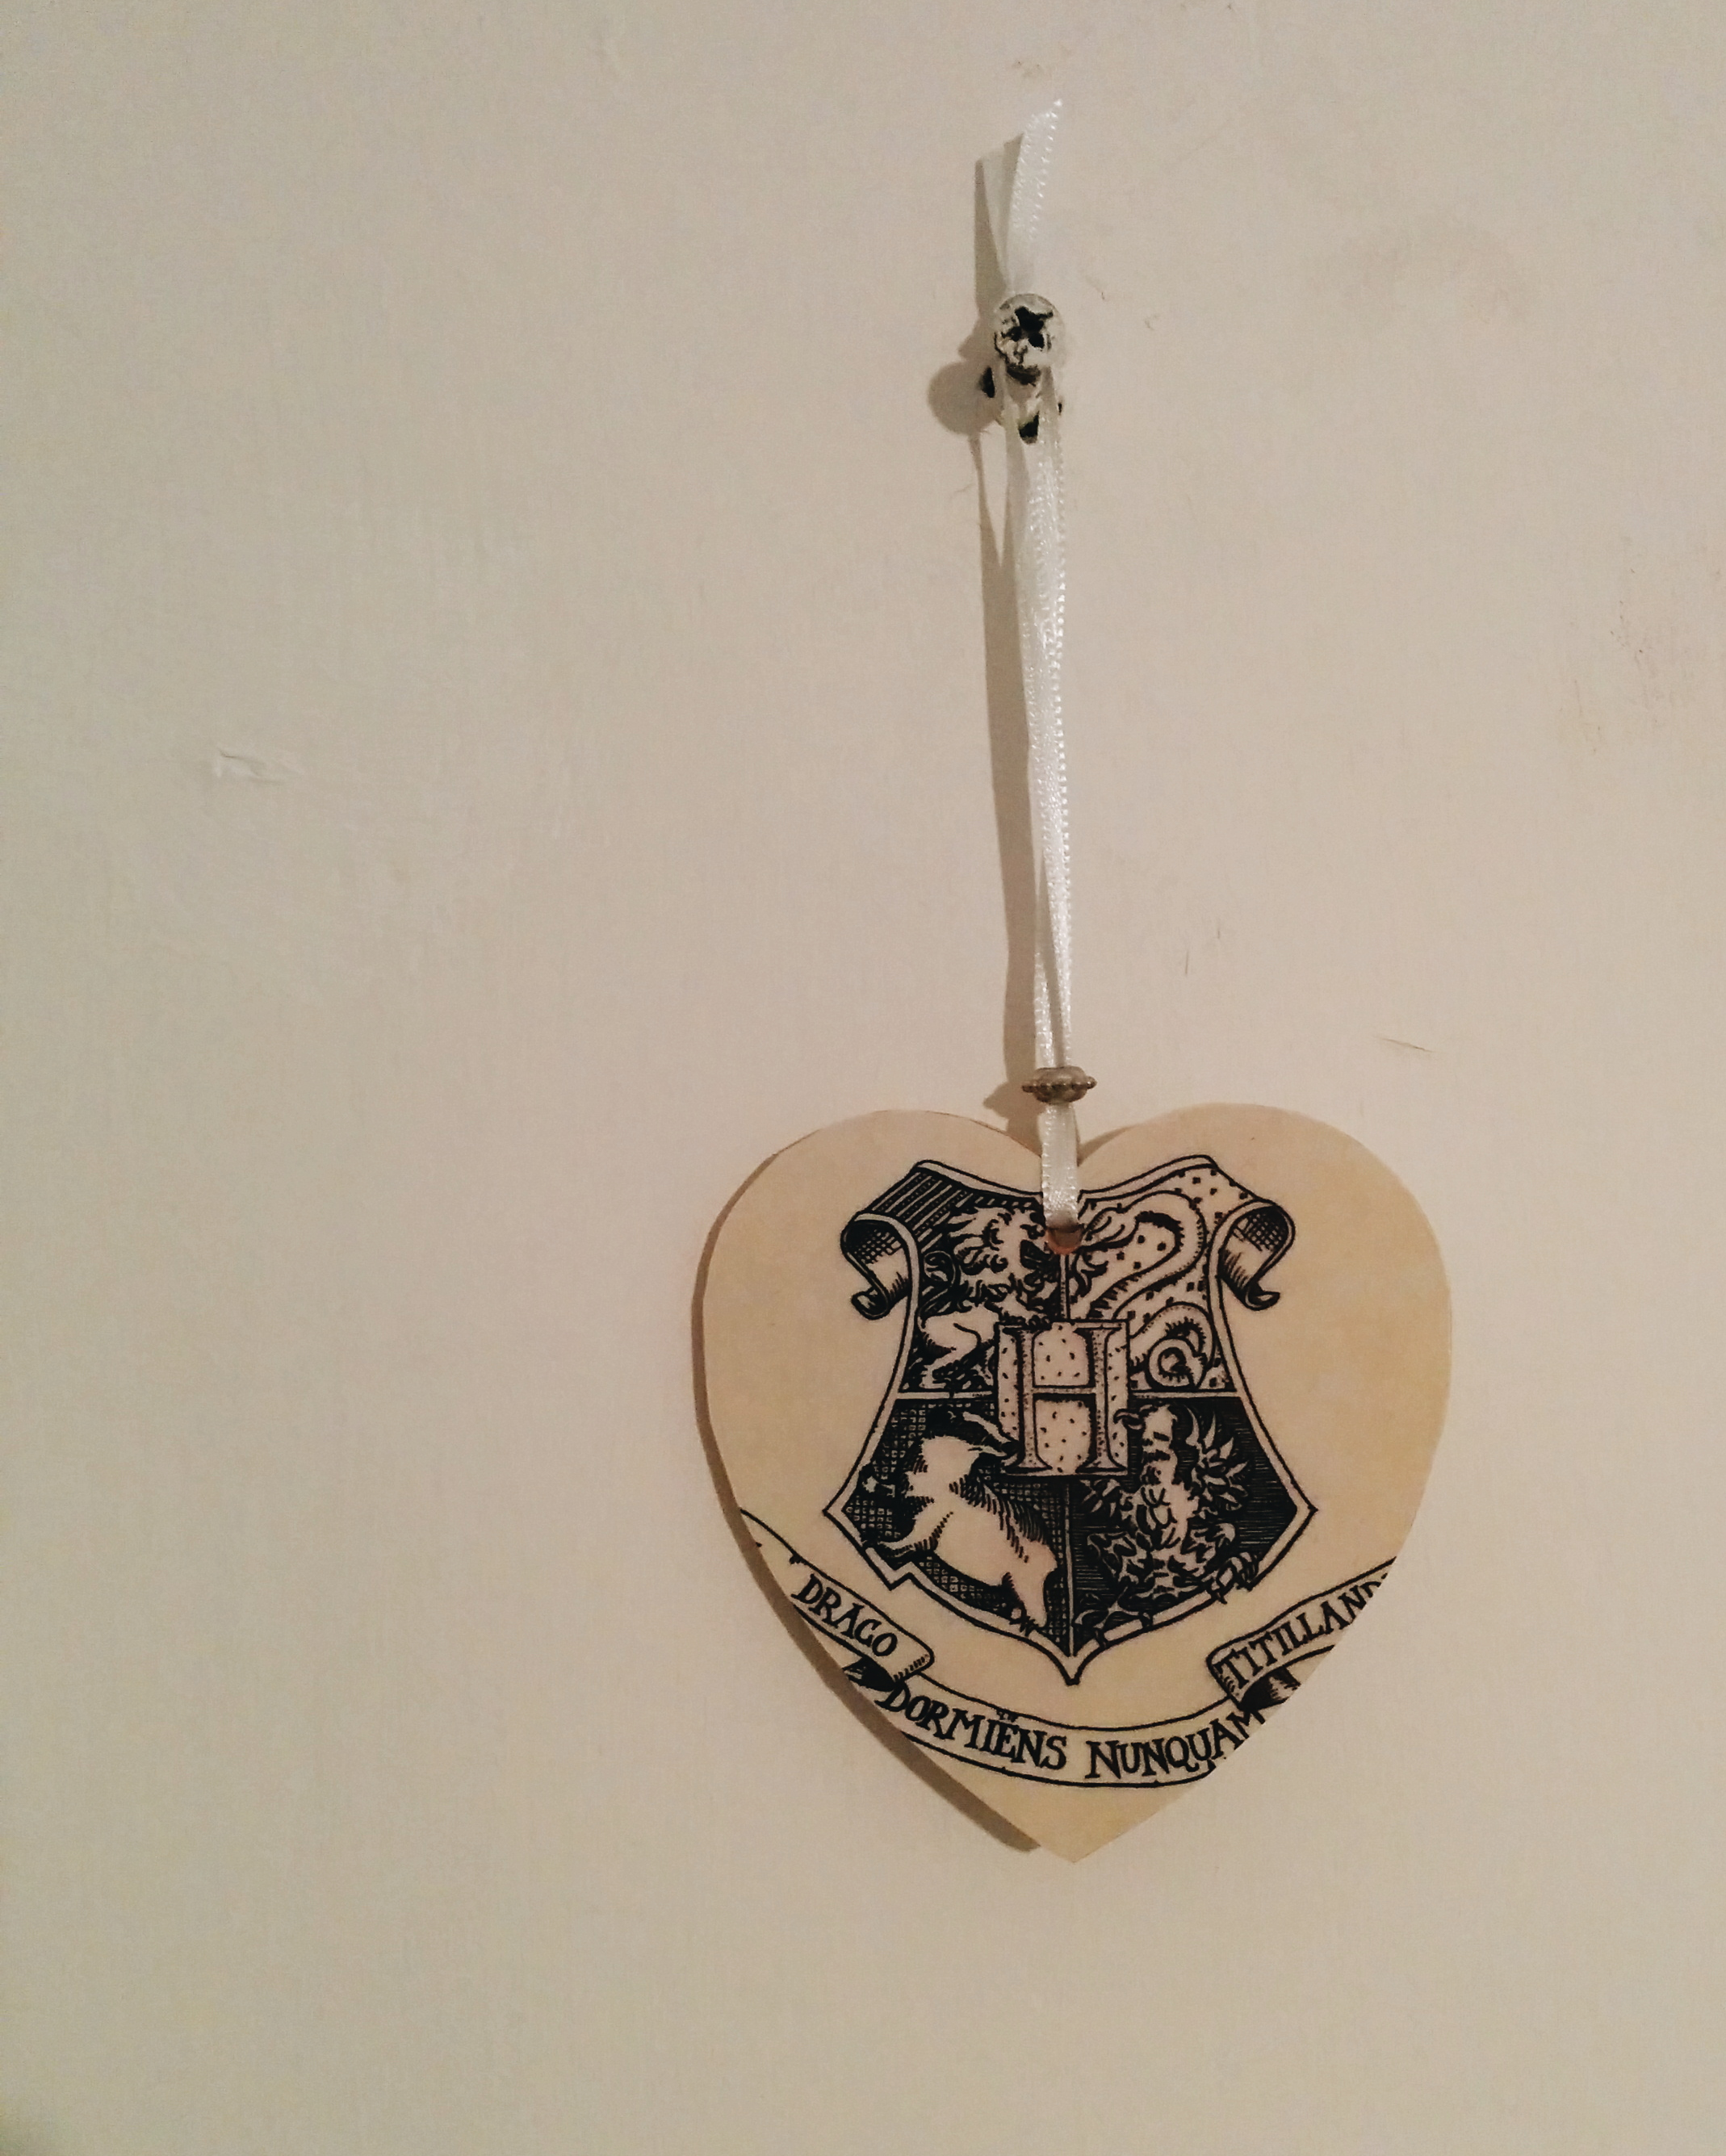 Daisybutter - Hong Kong Lifestyle and Fashion Blog: DIY Harry Potter decoration